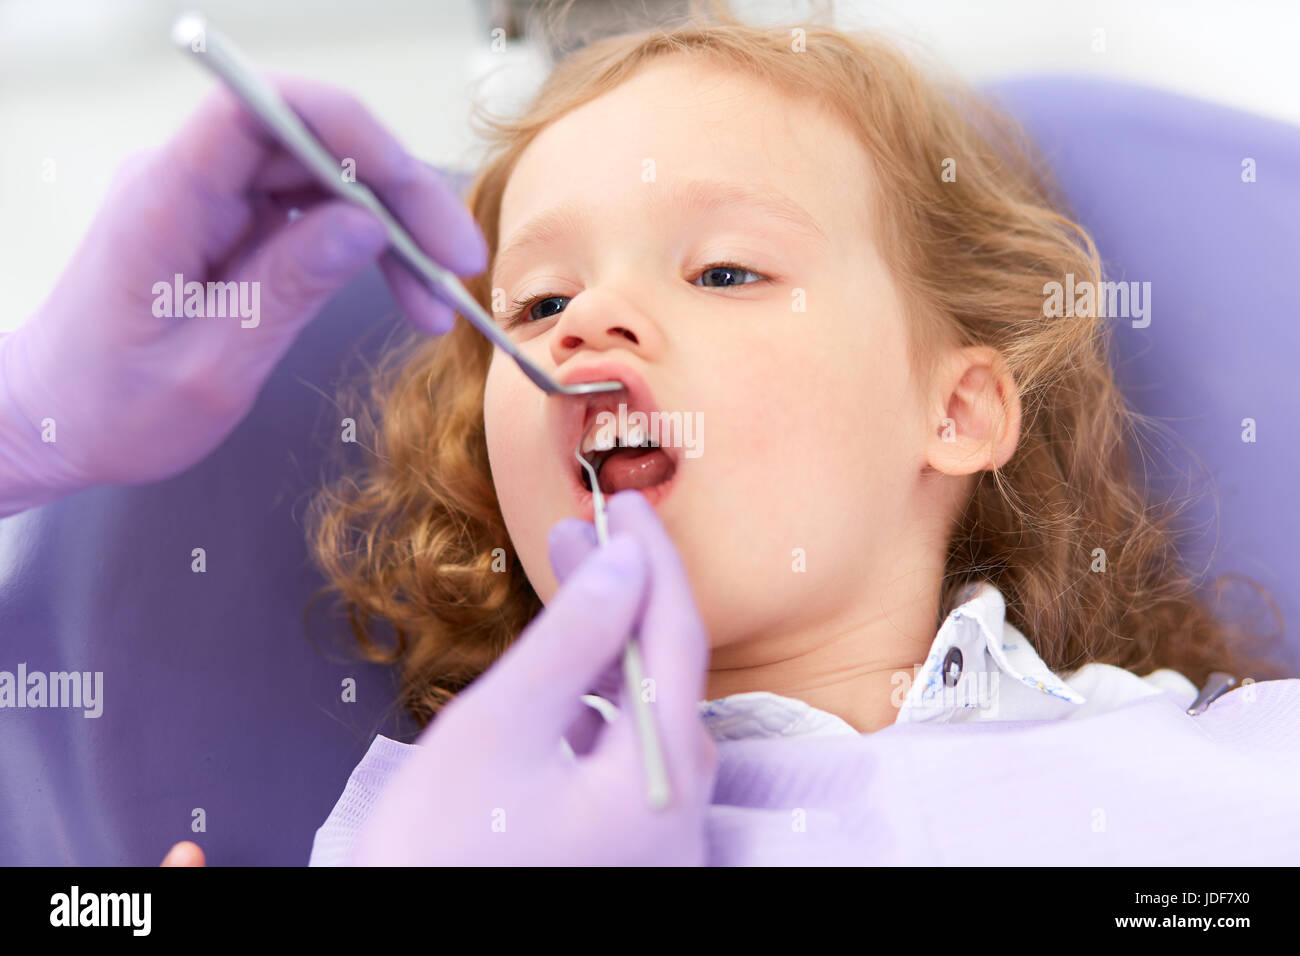 Dentist examining under lip - Stock Image